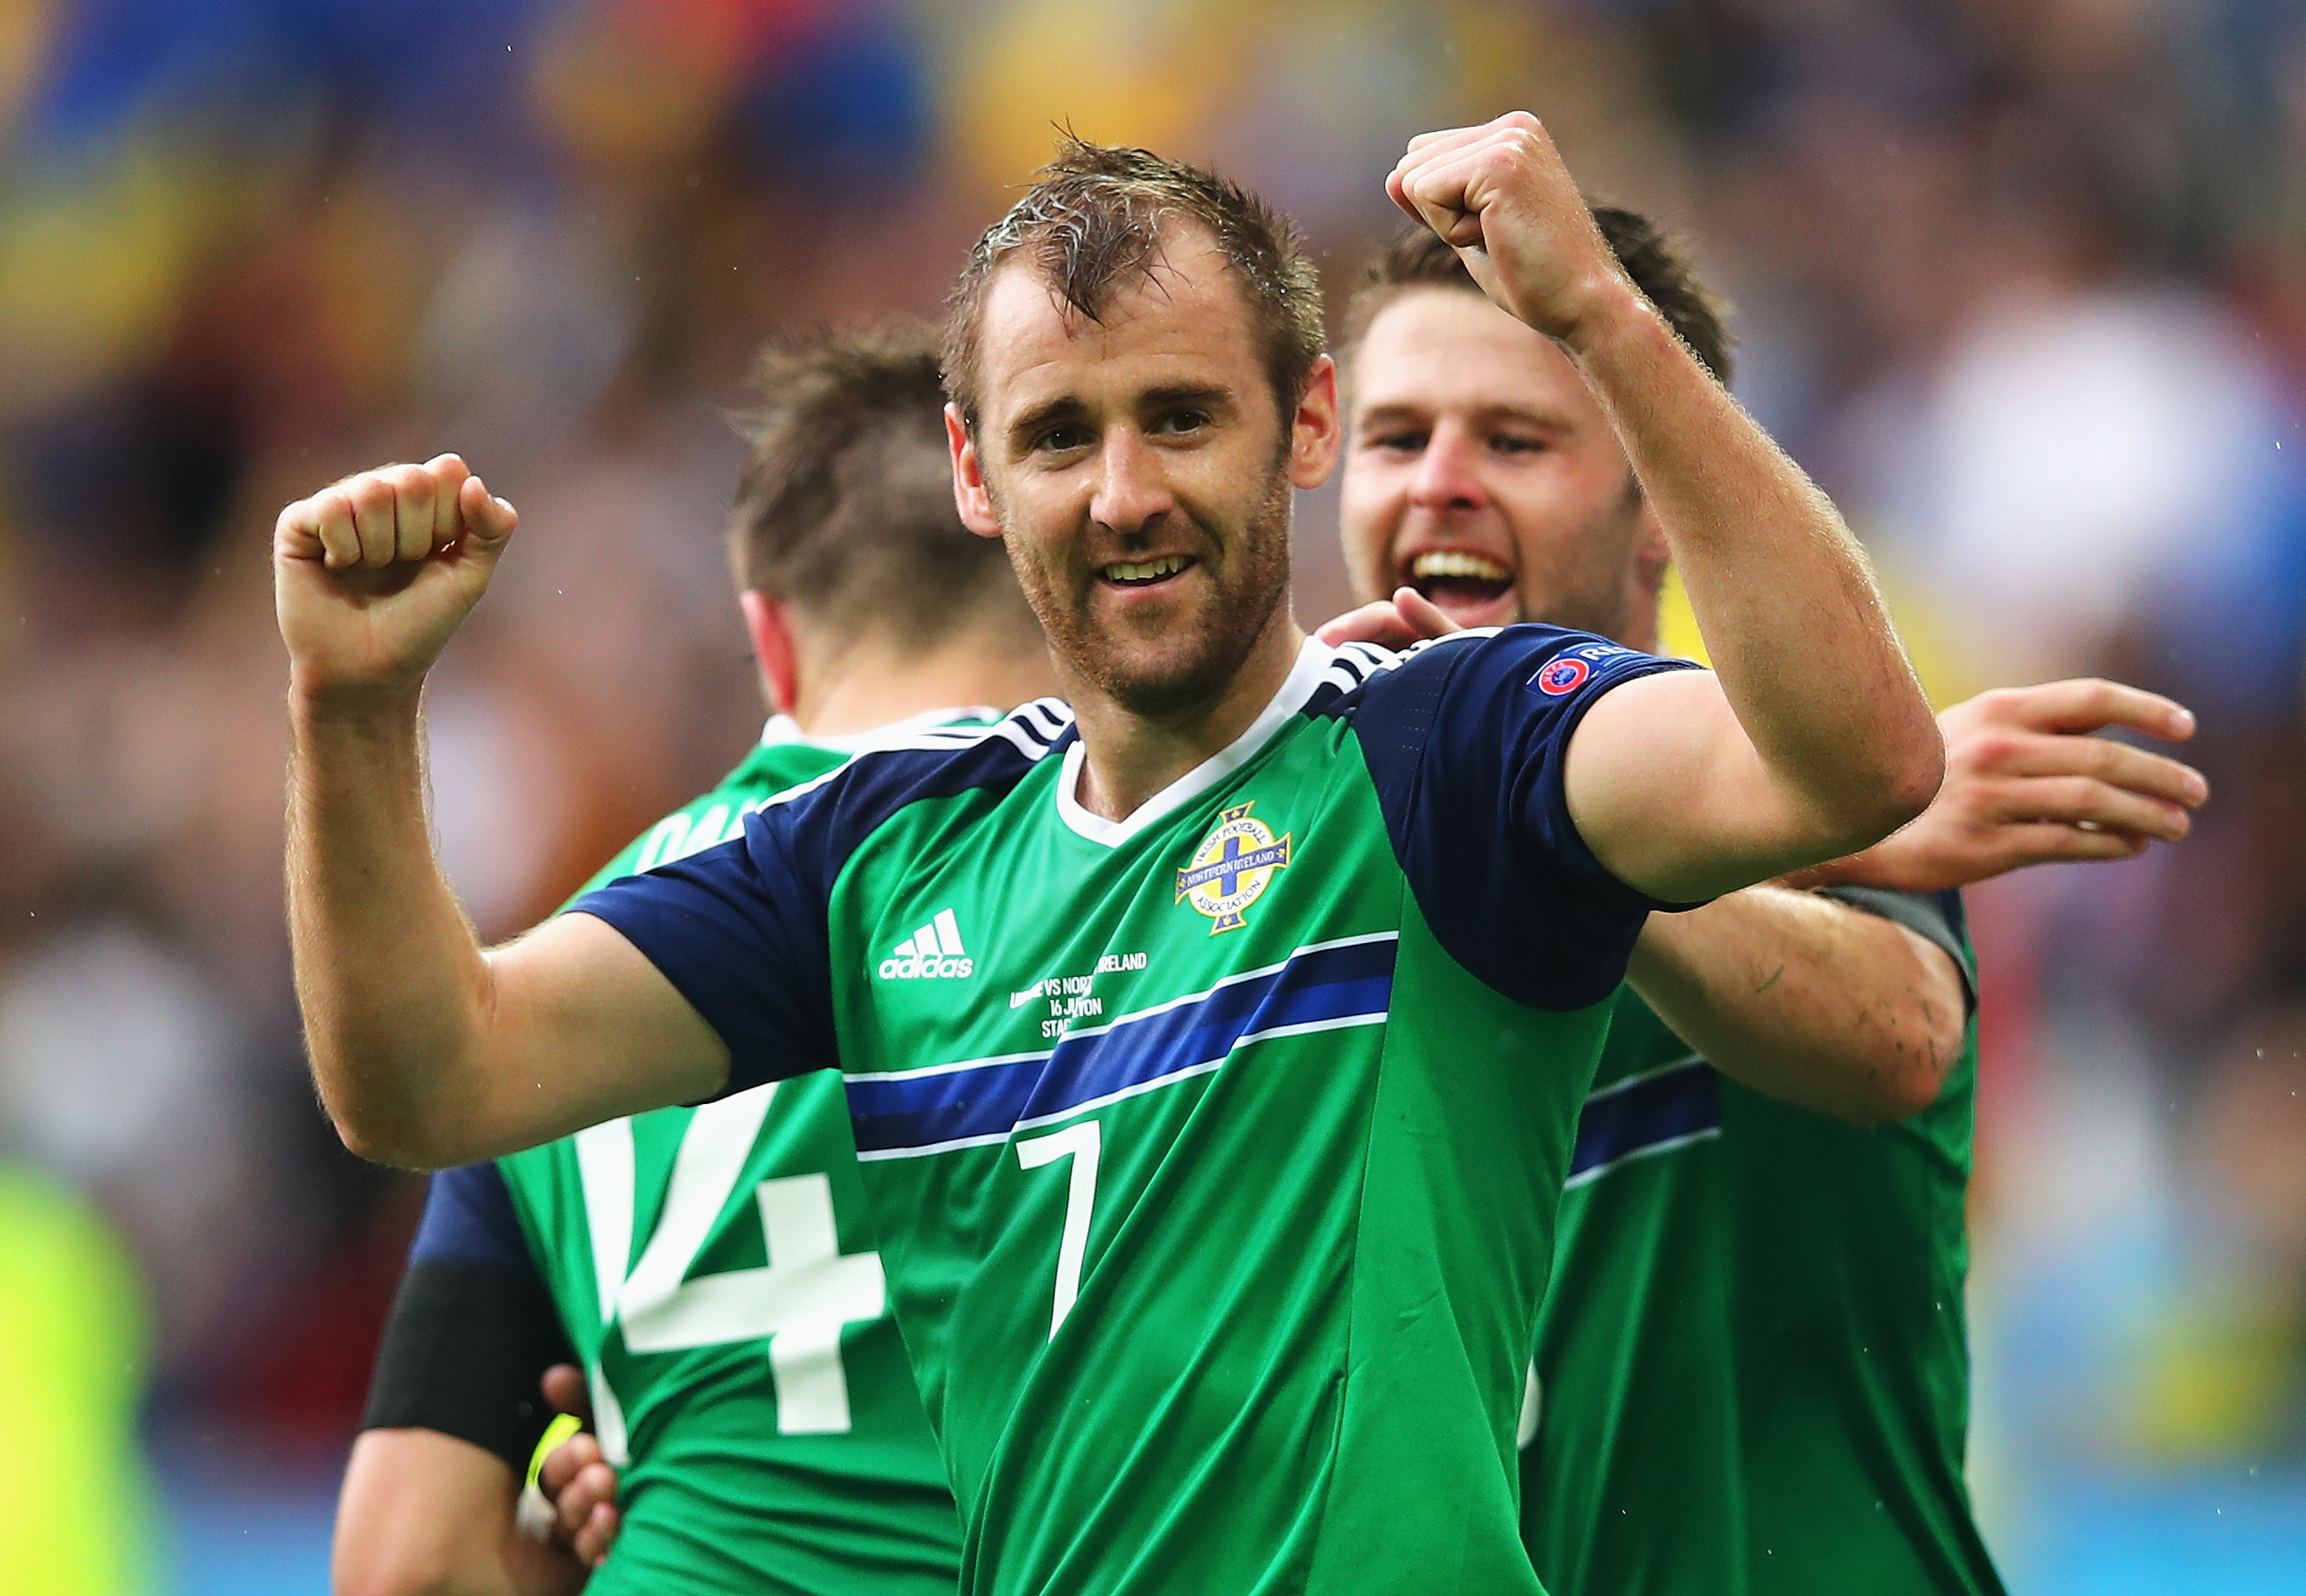 Niall McGinn celebrates scoring for Northern Ireland against Ukraine at Euro 2016.